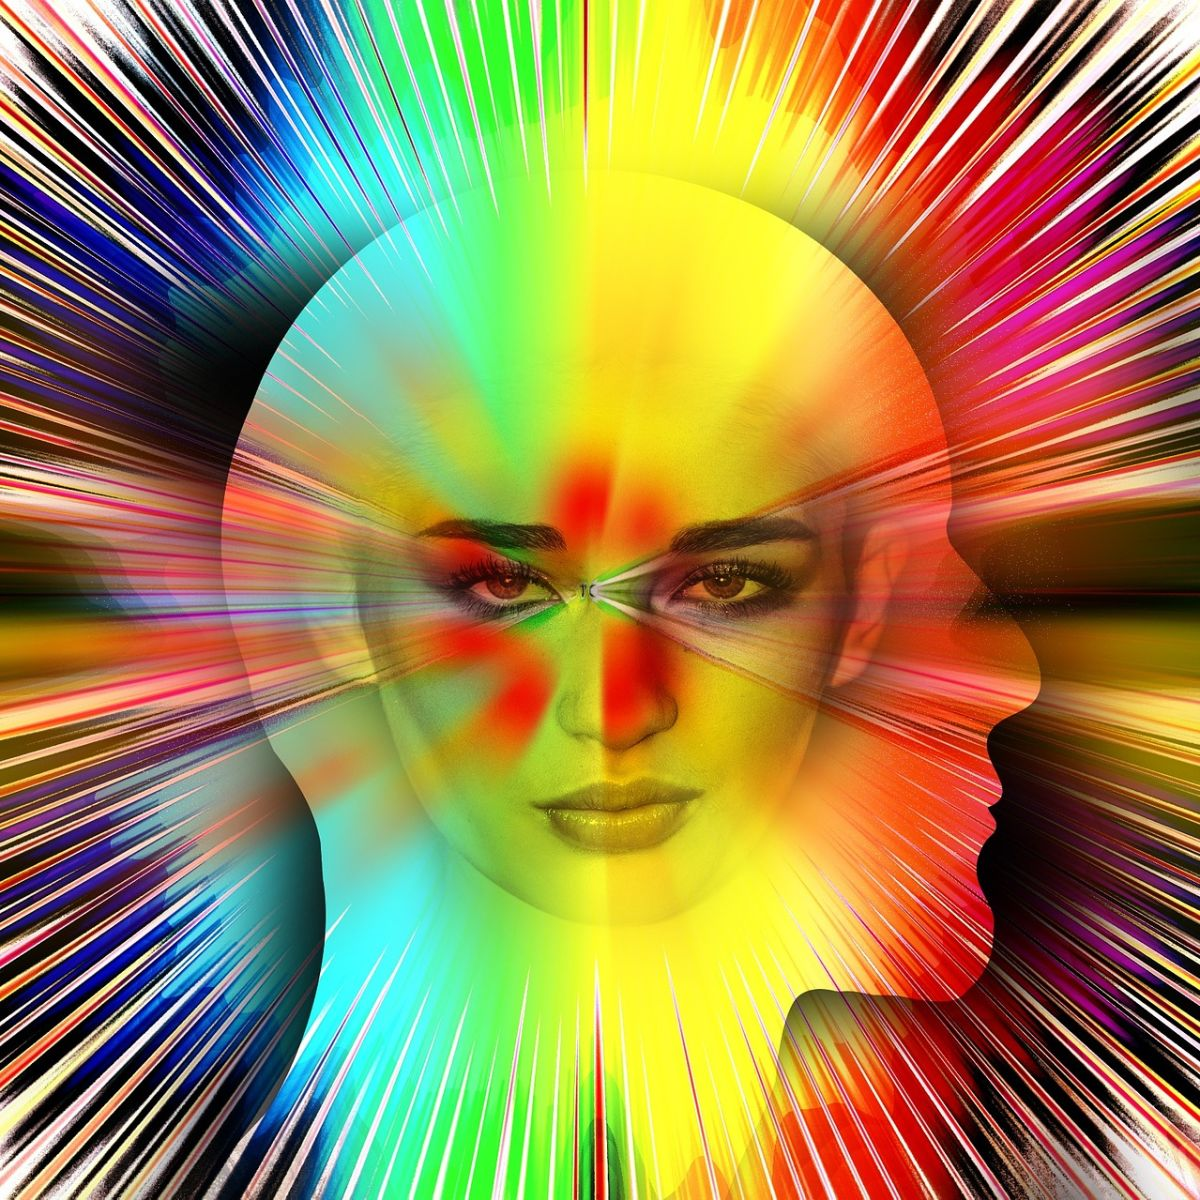 Human psyche: Man, woman, psychedelic brain colors